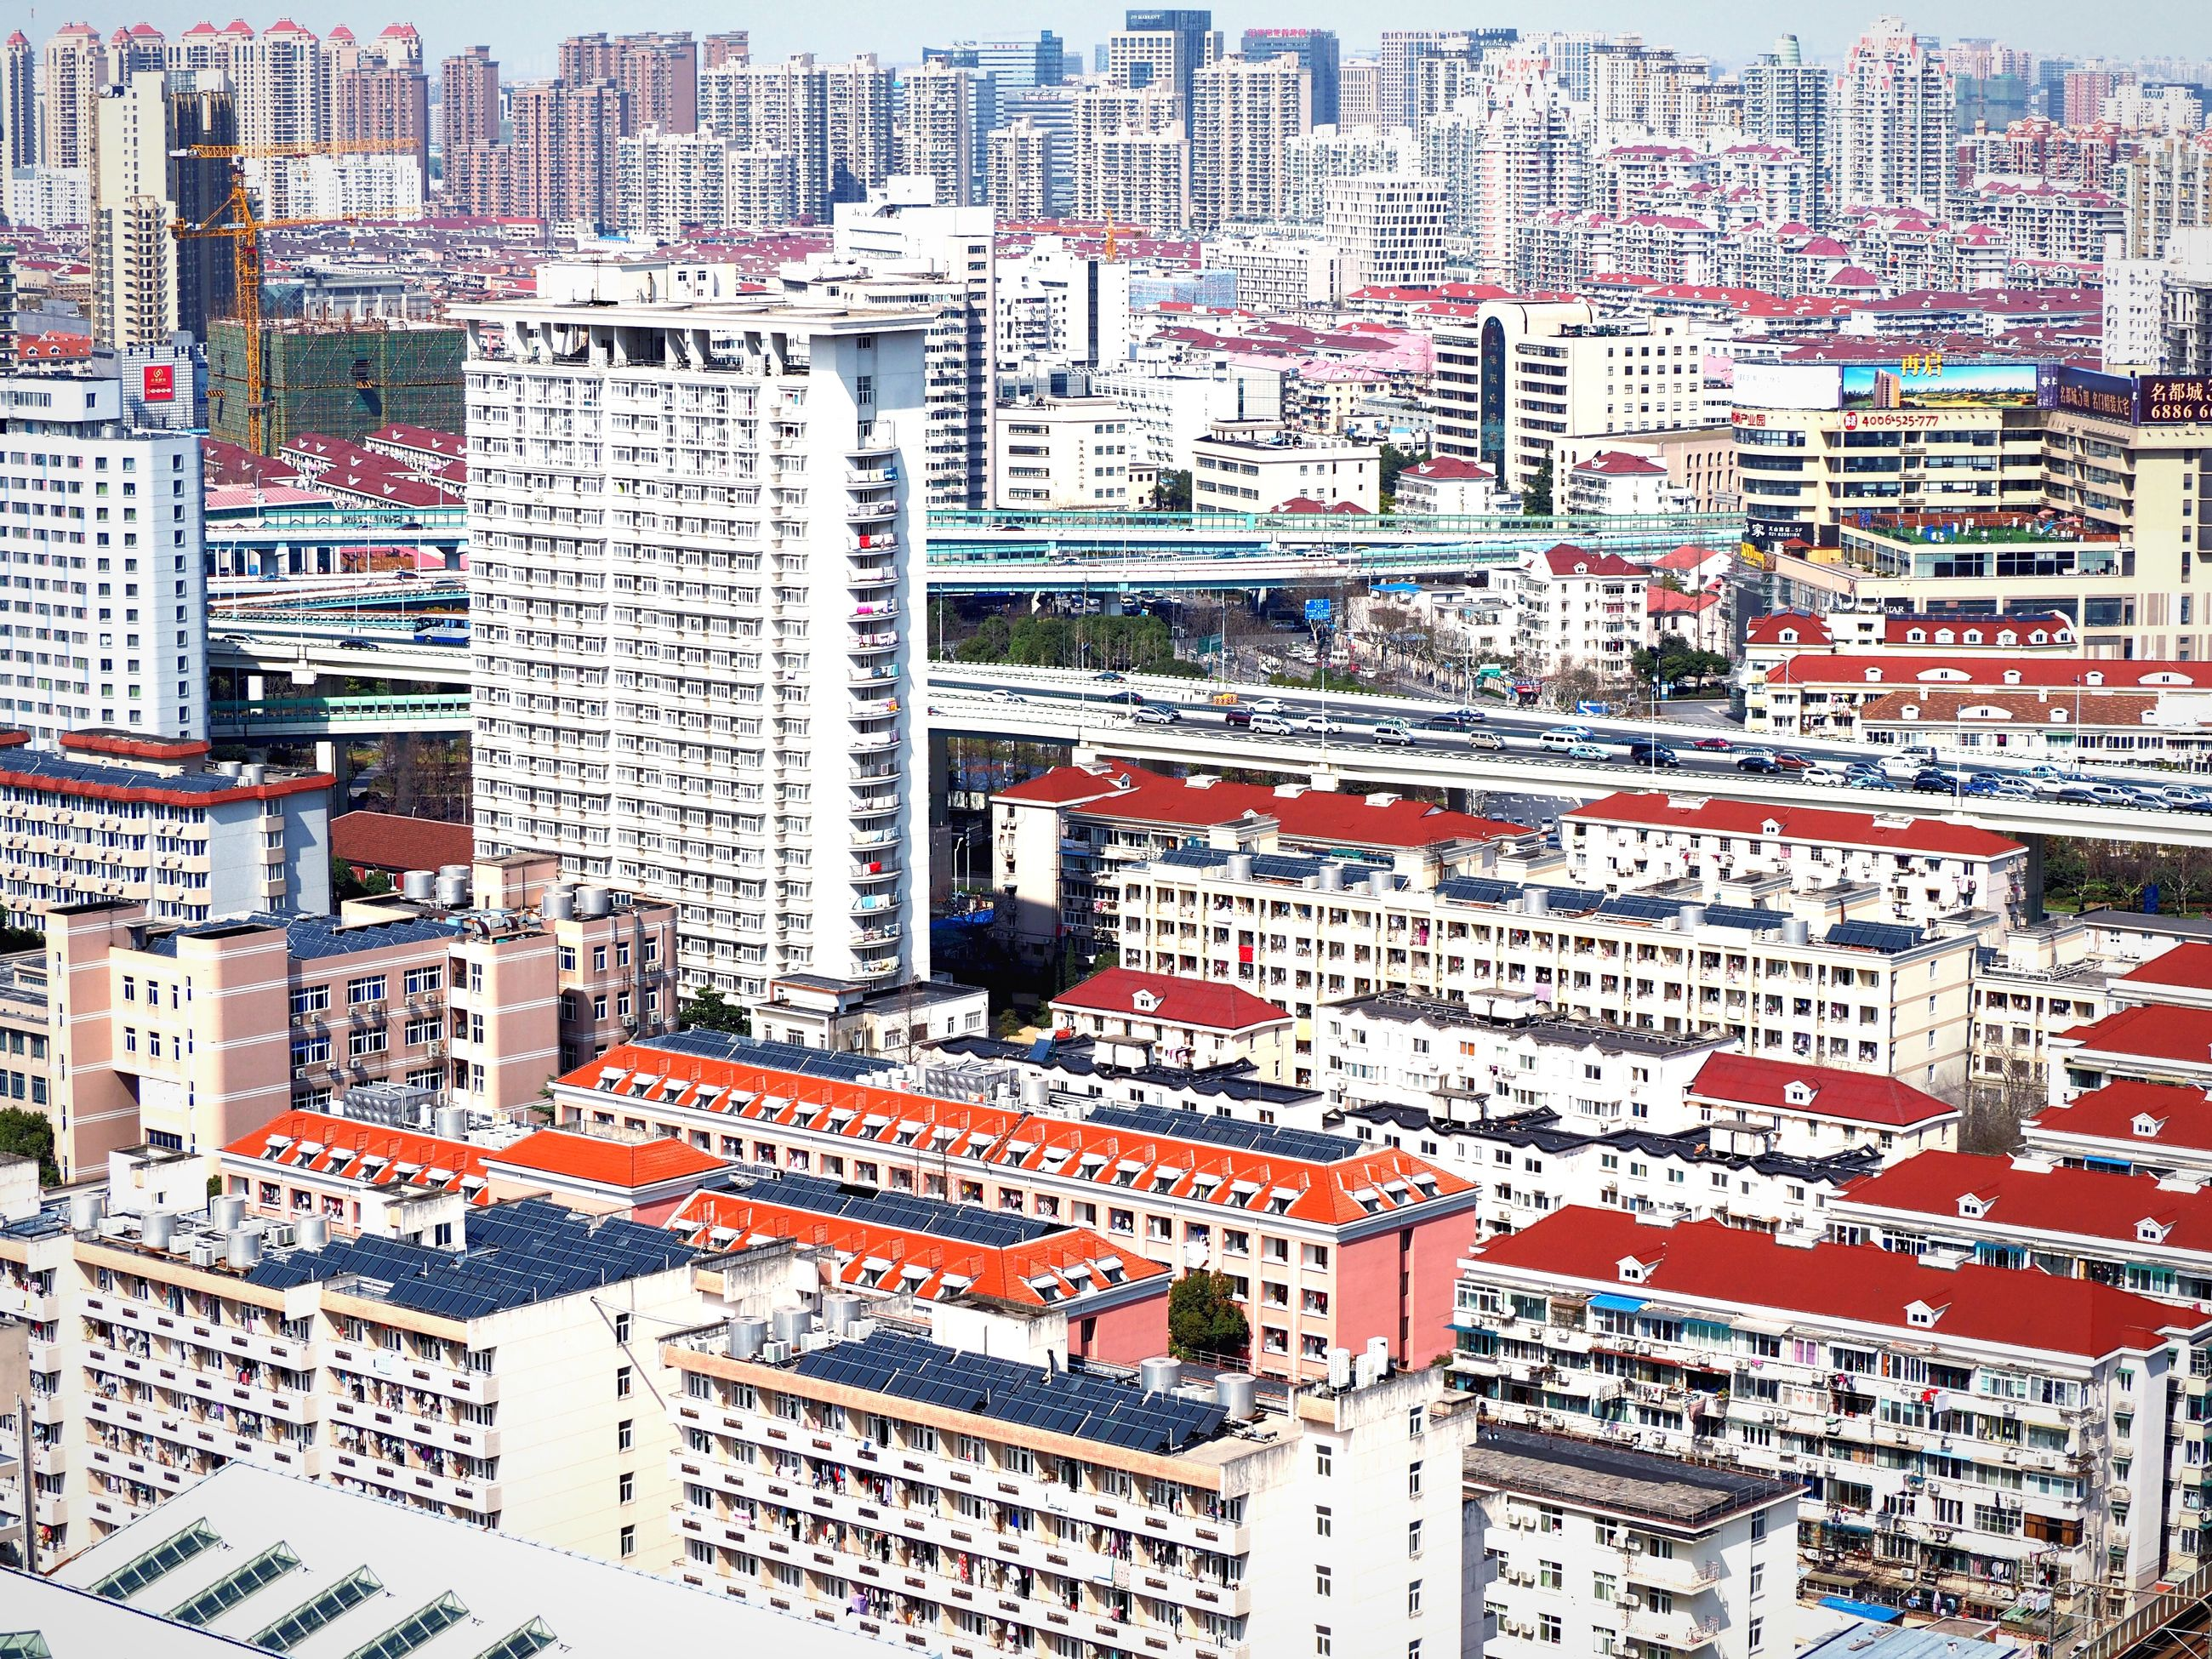 building exterior, architecture, built structure, city, residential structure, crowded, high angle view, full frame, residential building, backgrounds, cityscape, day, roof, residential district, outdoors, building, no people, city life, travel destinations, multi colored